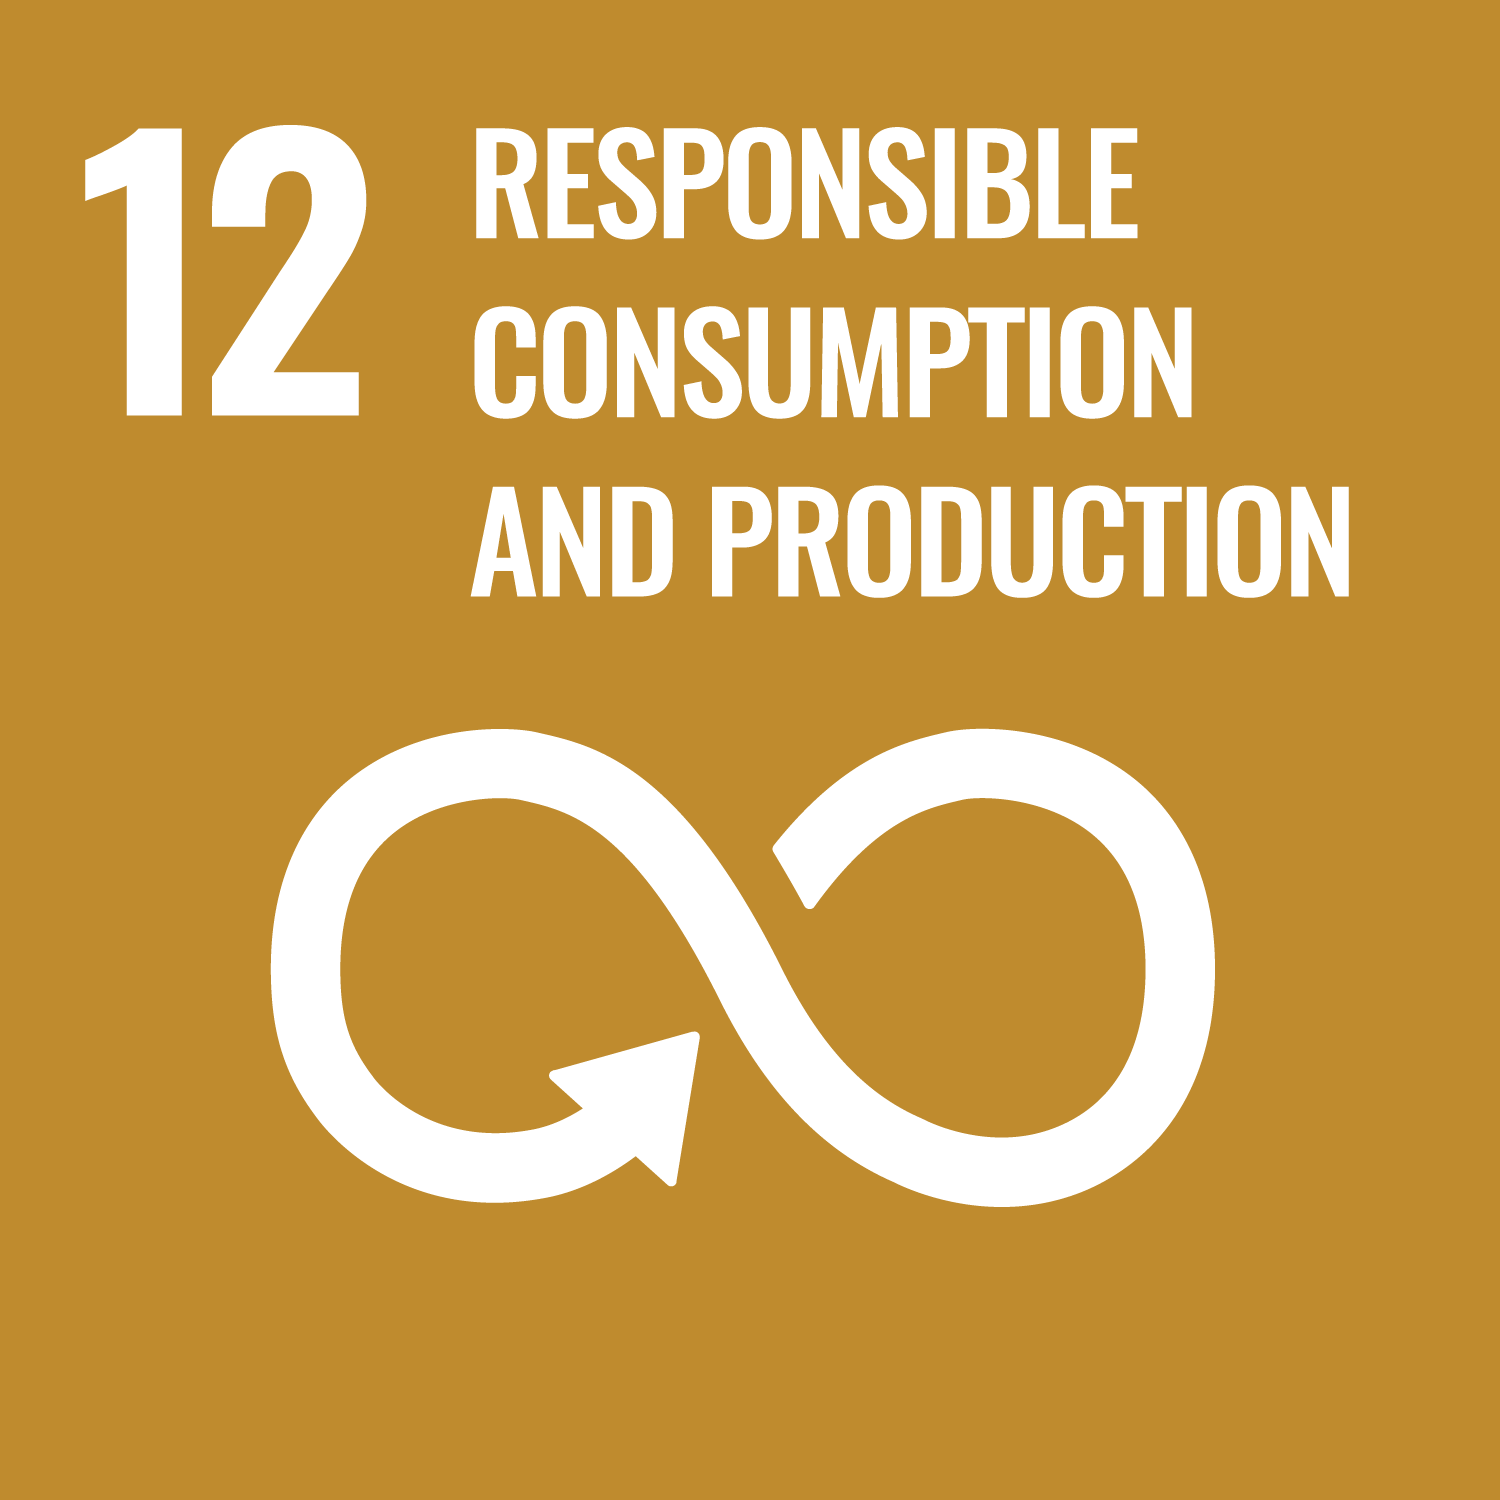 Responsible Consumption And Production - UN Sustainable Development Goal 12